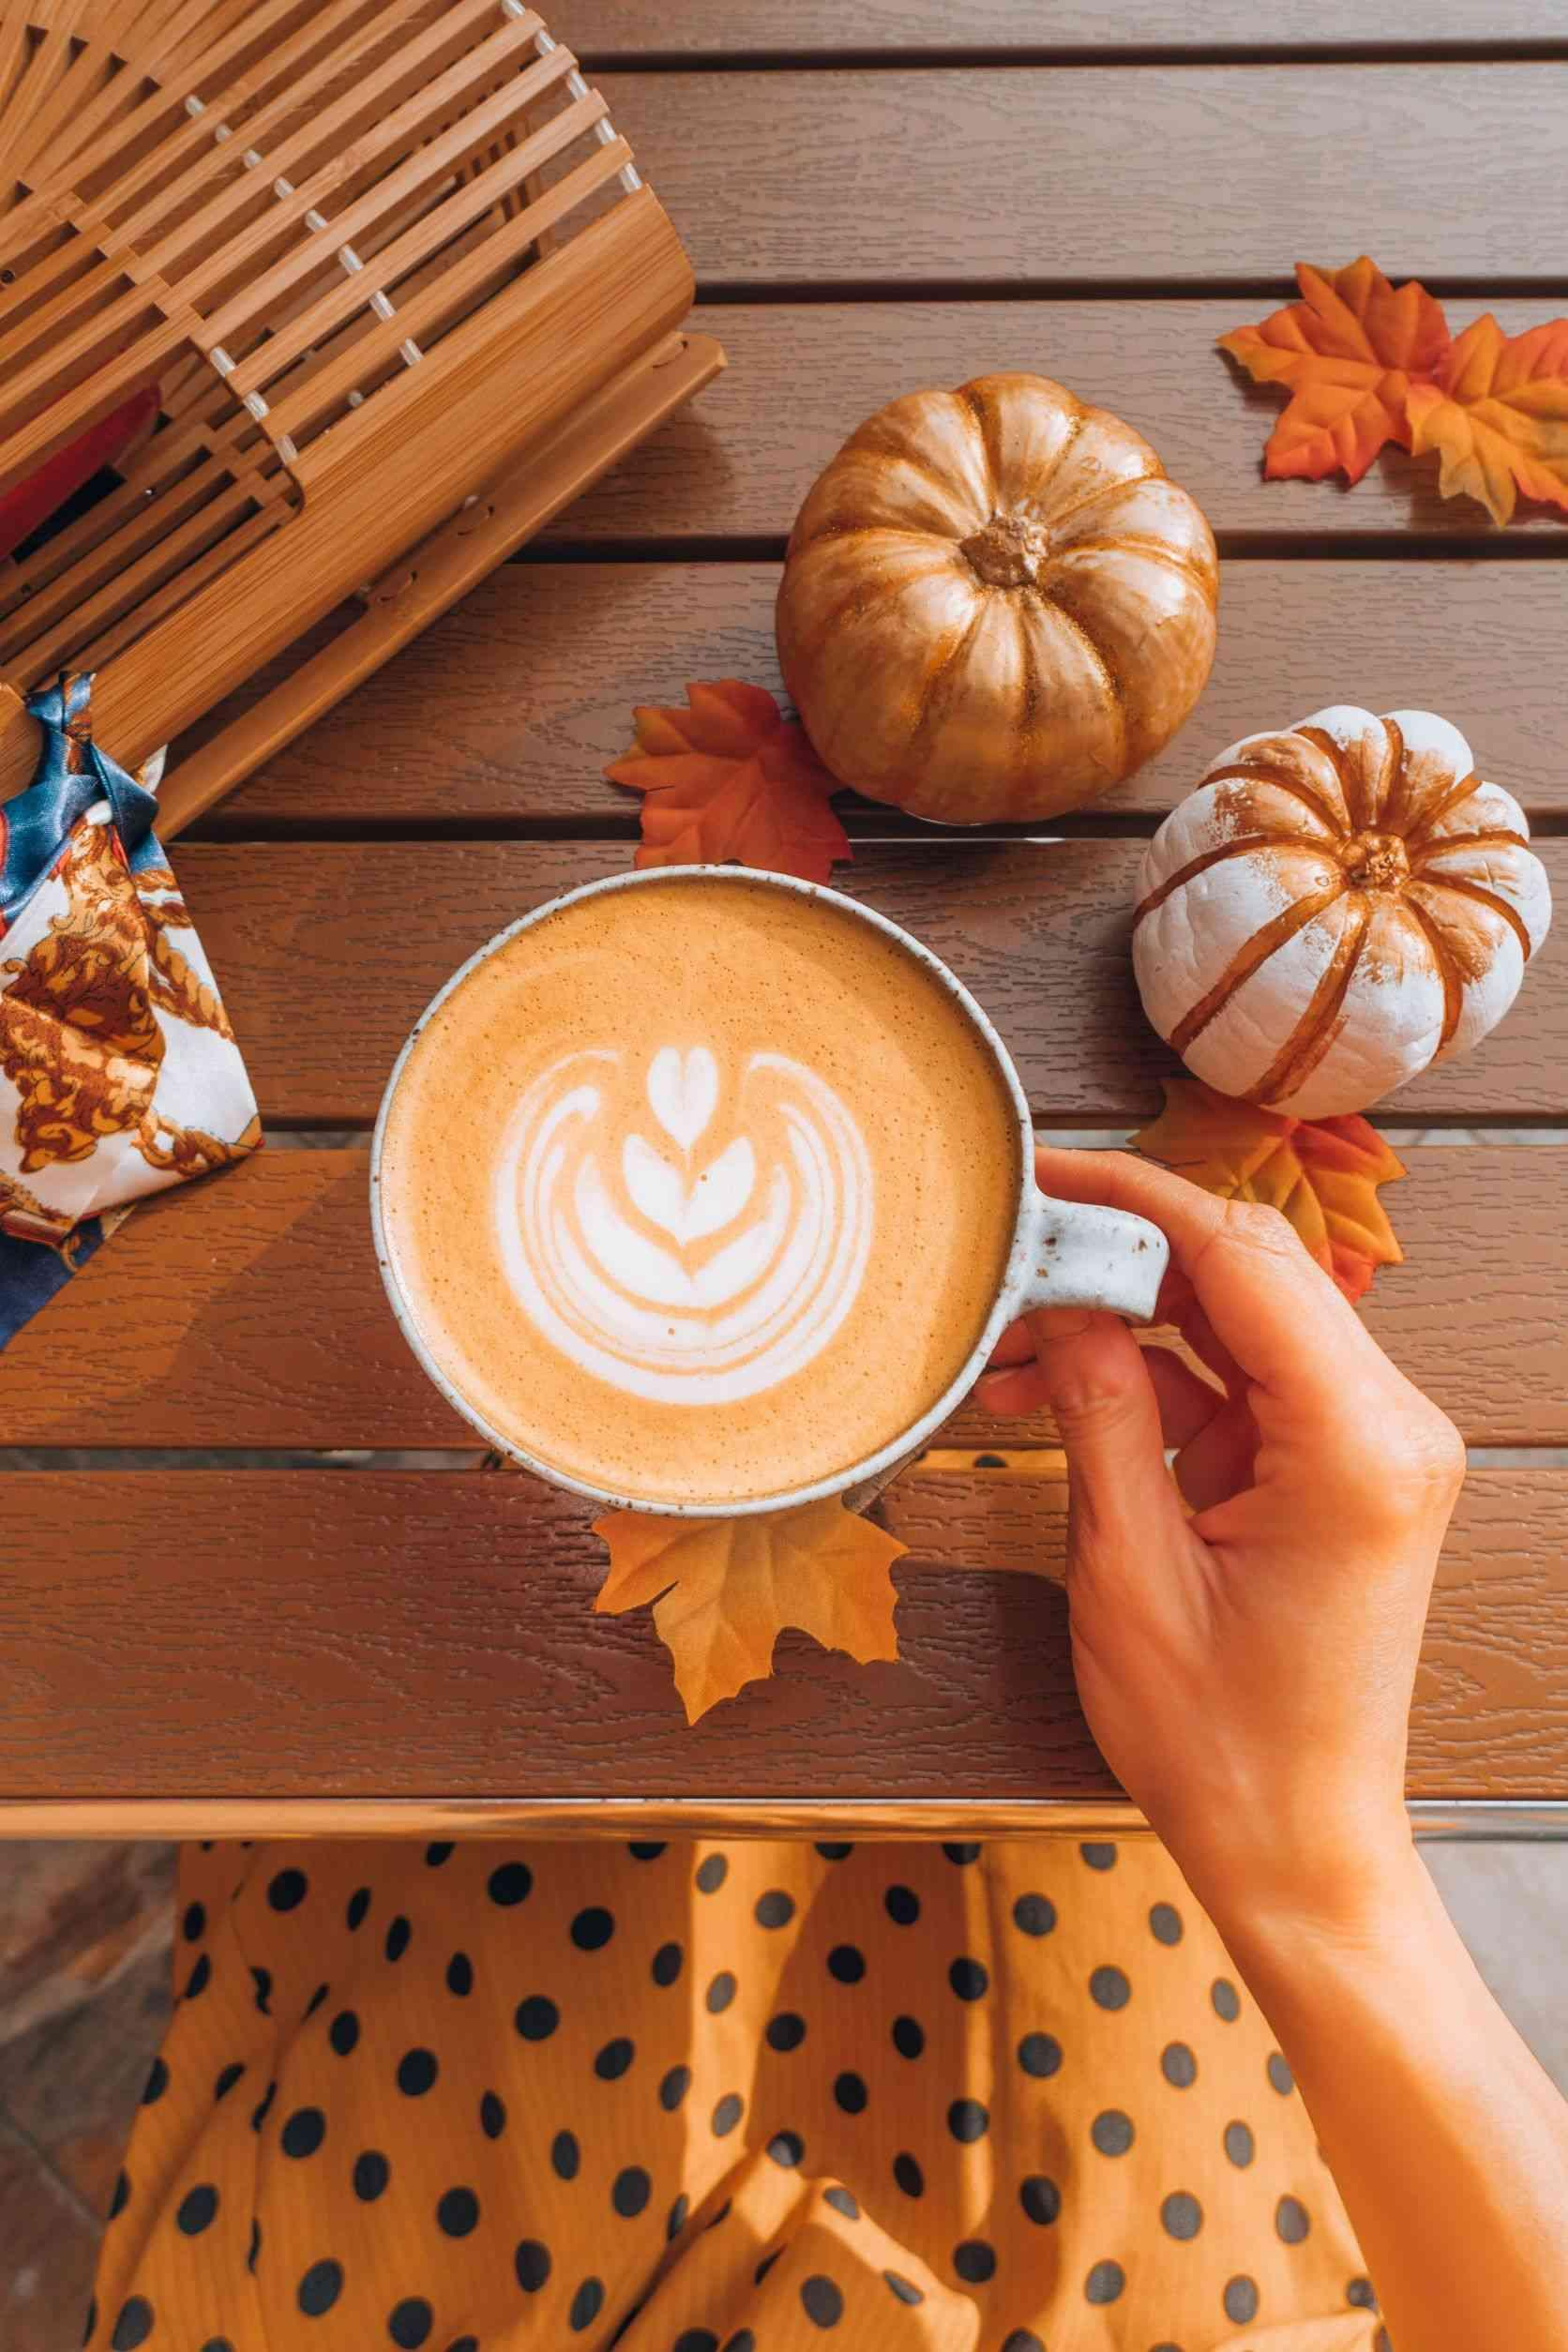 Latte surrounded by pumpkins